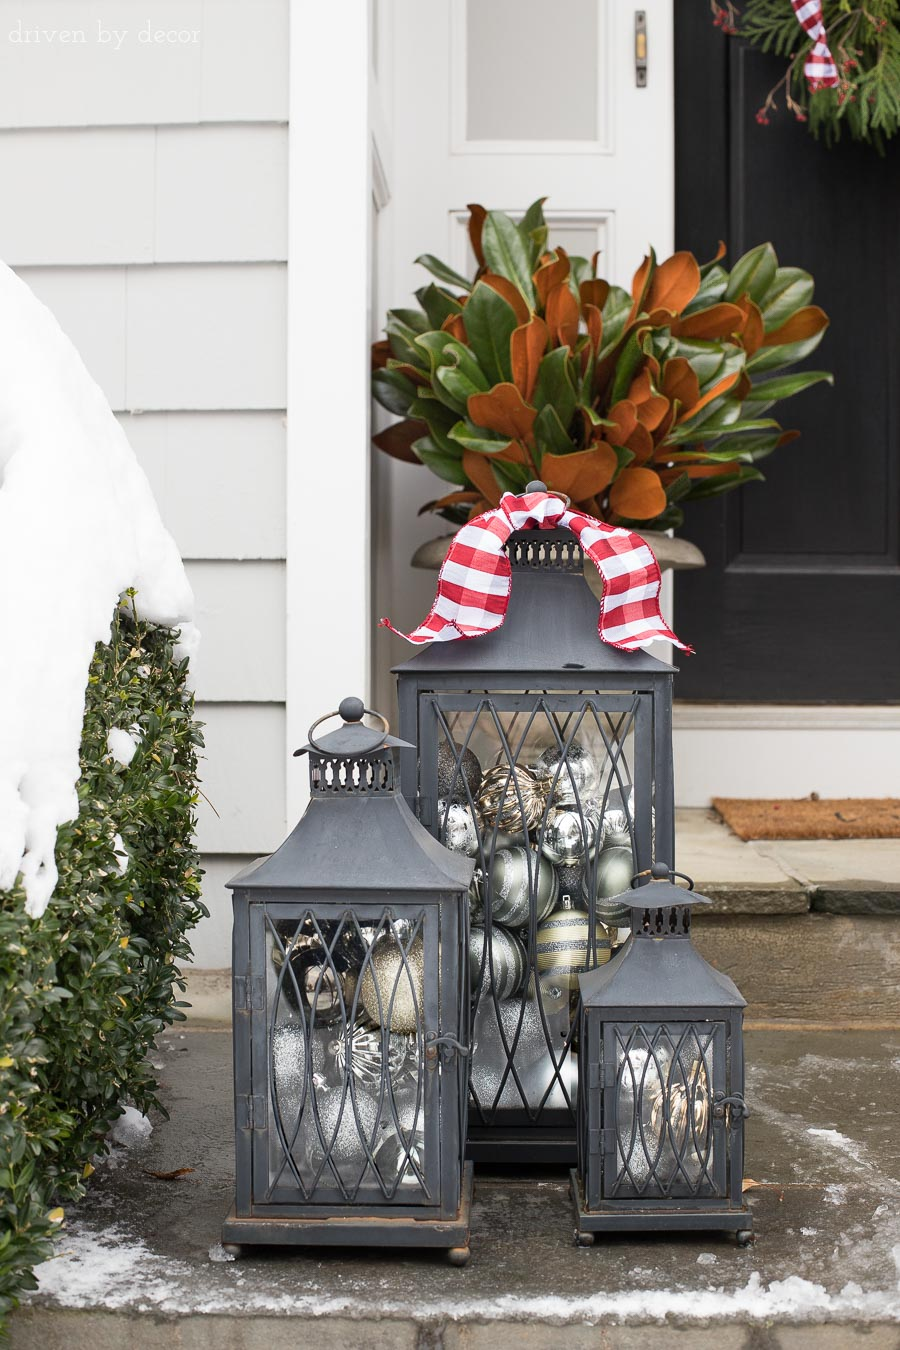 A trio of lanterns filled with ornaments is a simple idea for decorating your porch for Christmas!